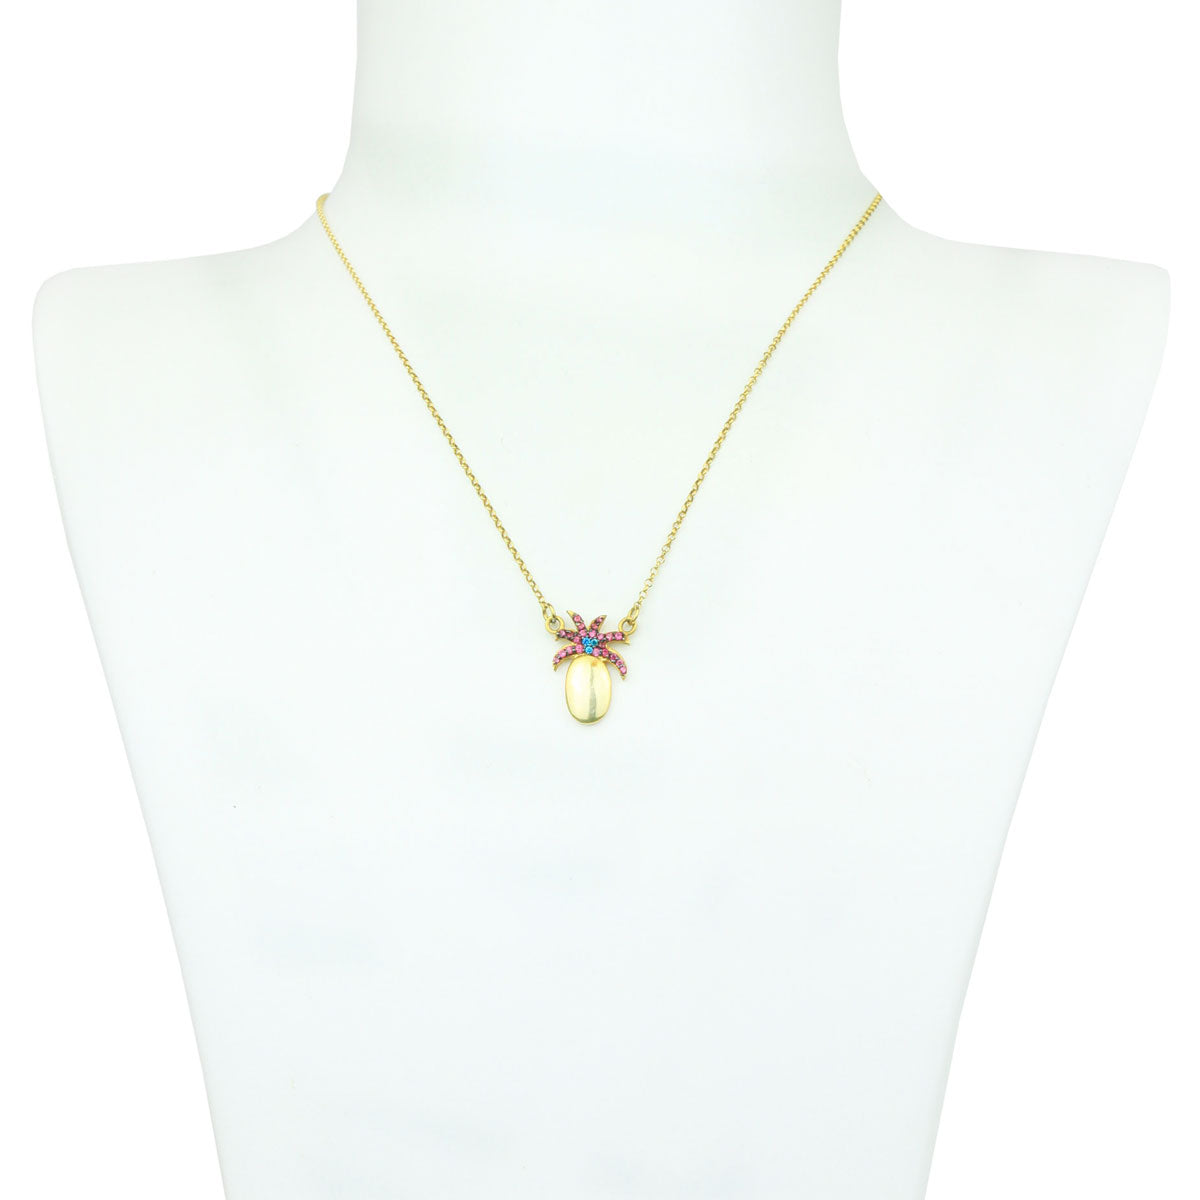 Pineapple Gold Plated 925 Sterling Silver Chain Short Necklace